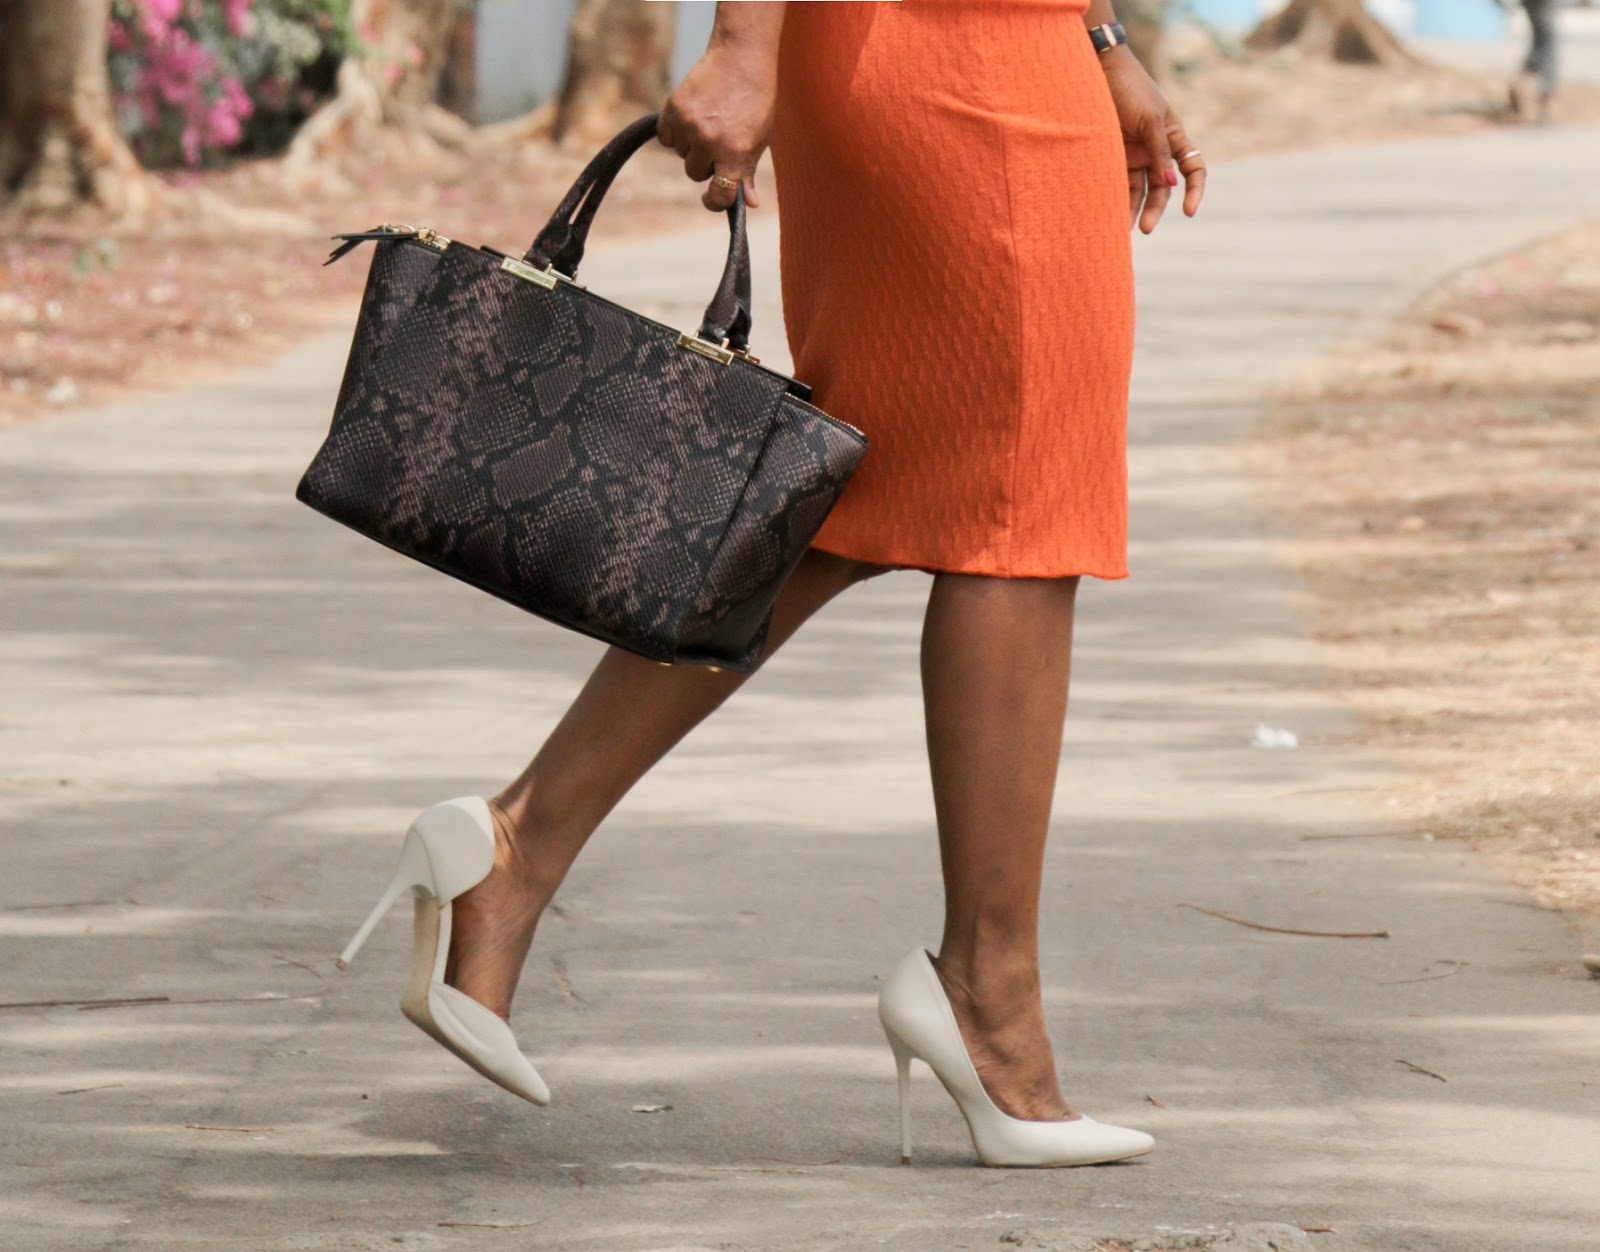 THE FLYGERIAN - Henri Bendel Snake Print Bag from The Flygerian with Boohoo Court shoes